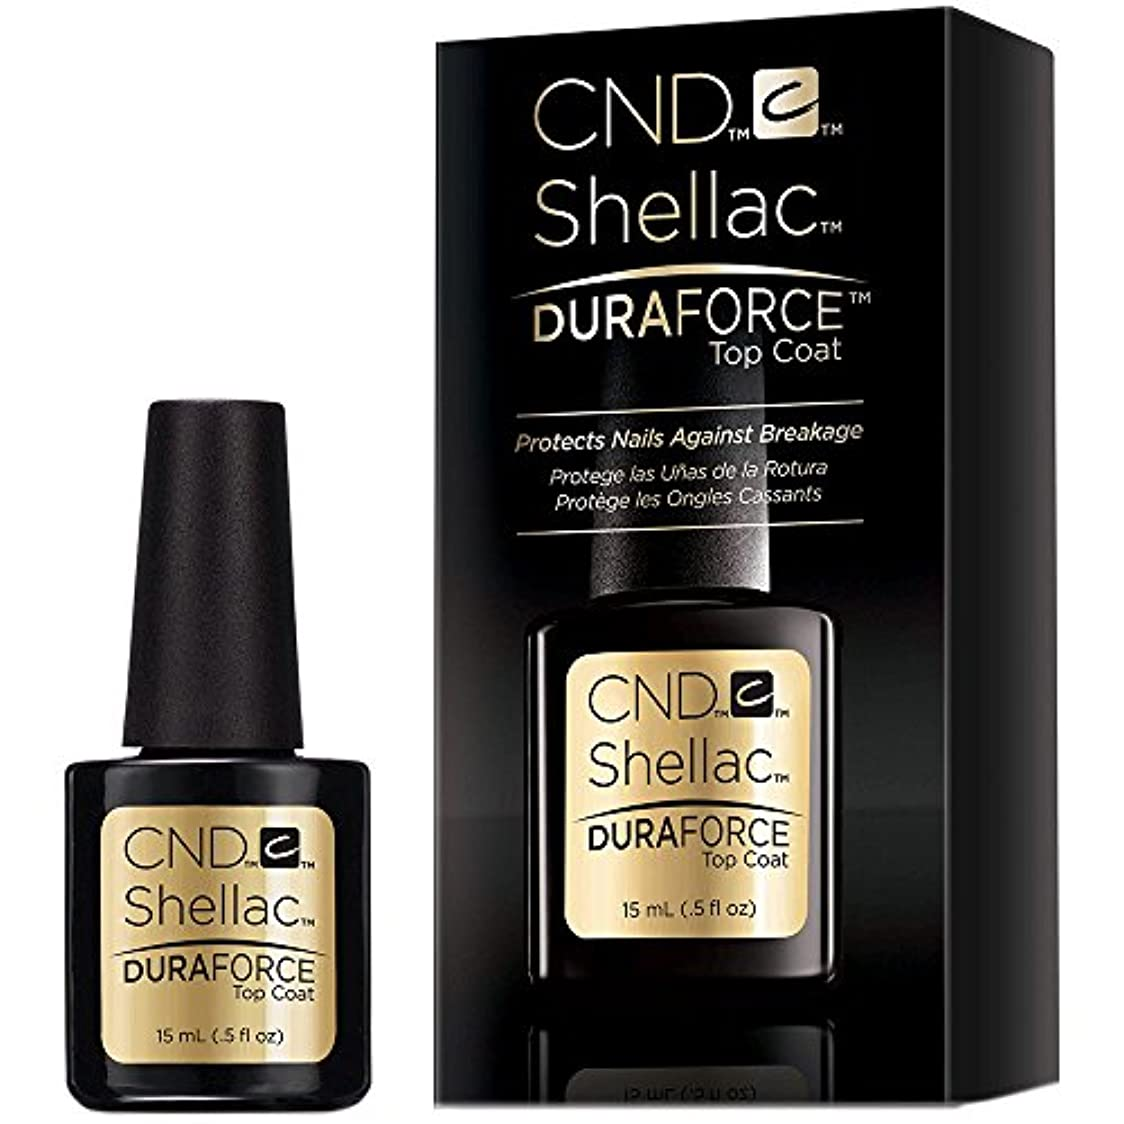 と遊ぶスタジアムなかなかCND Shellac Gel Polish - Duraforce Top Coat - 0.5oz / 15ml